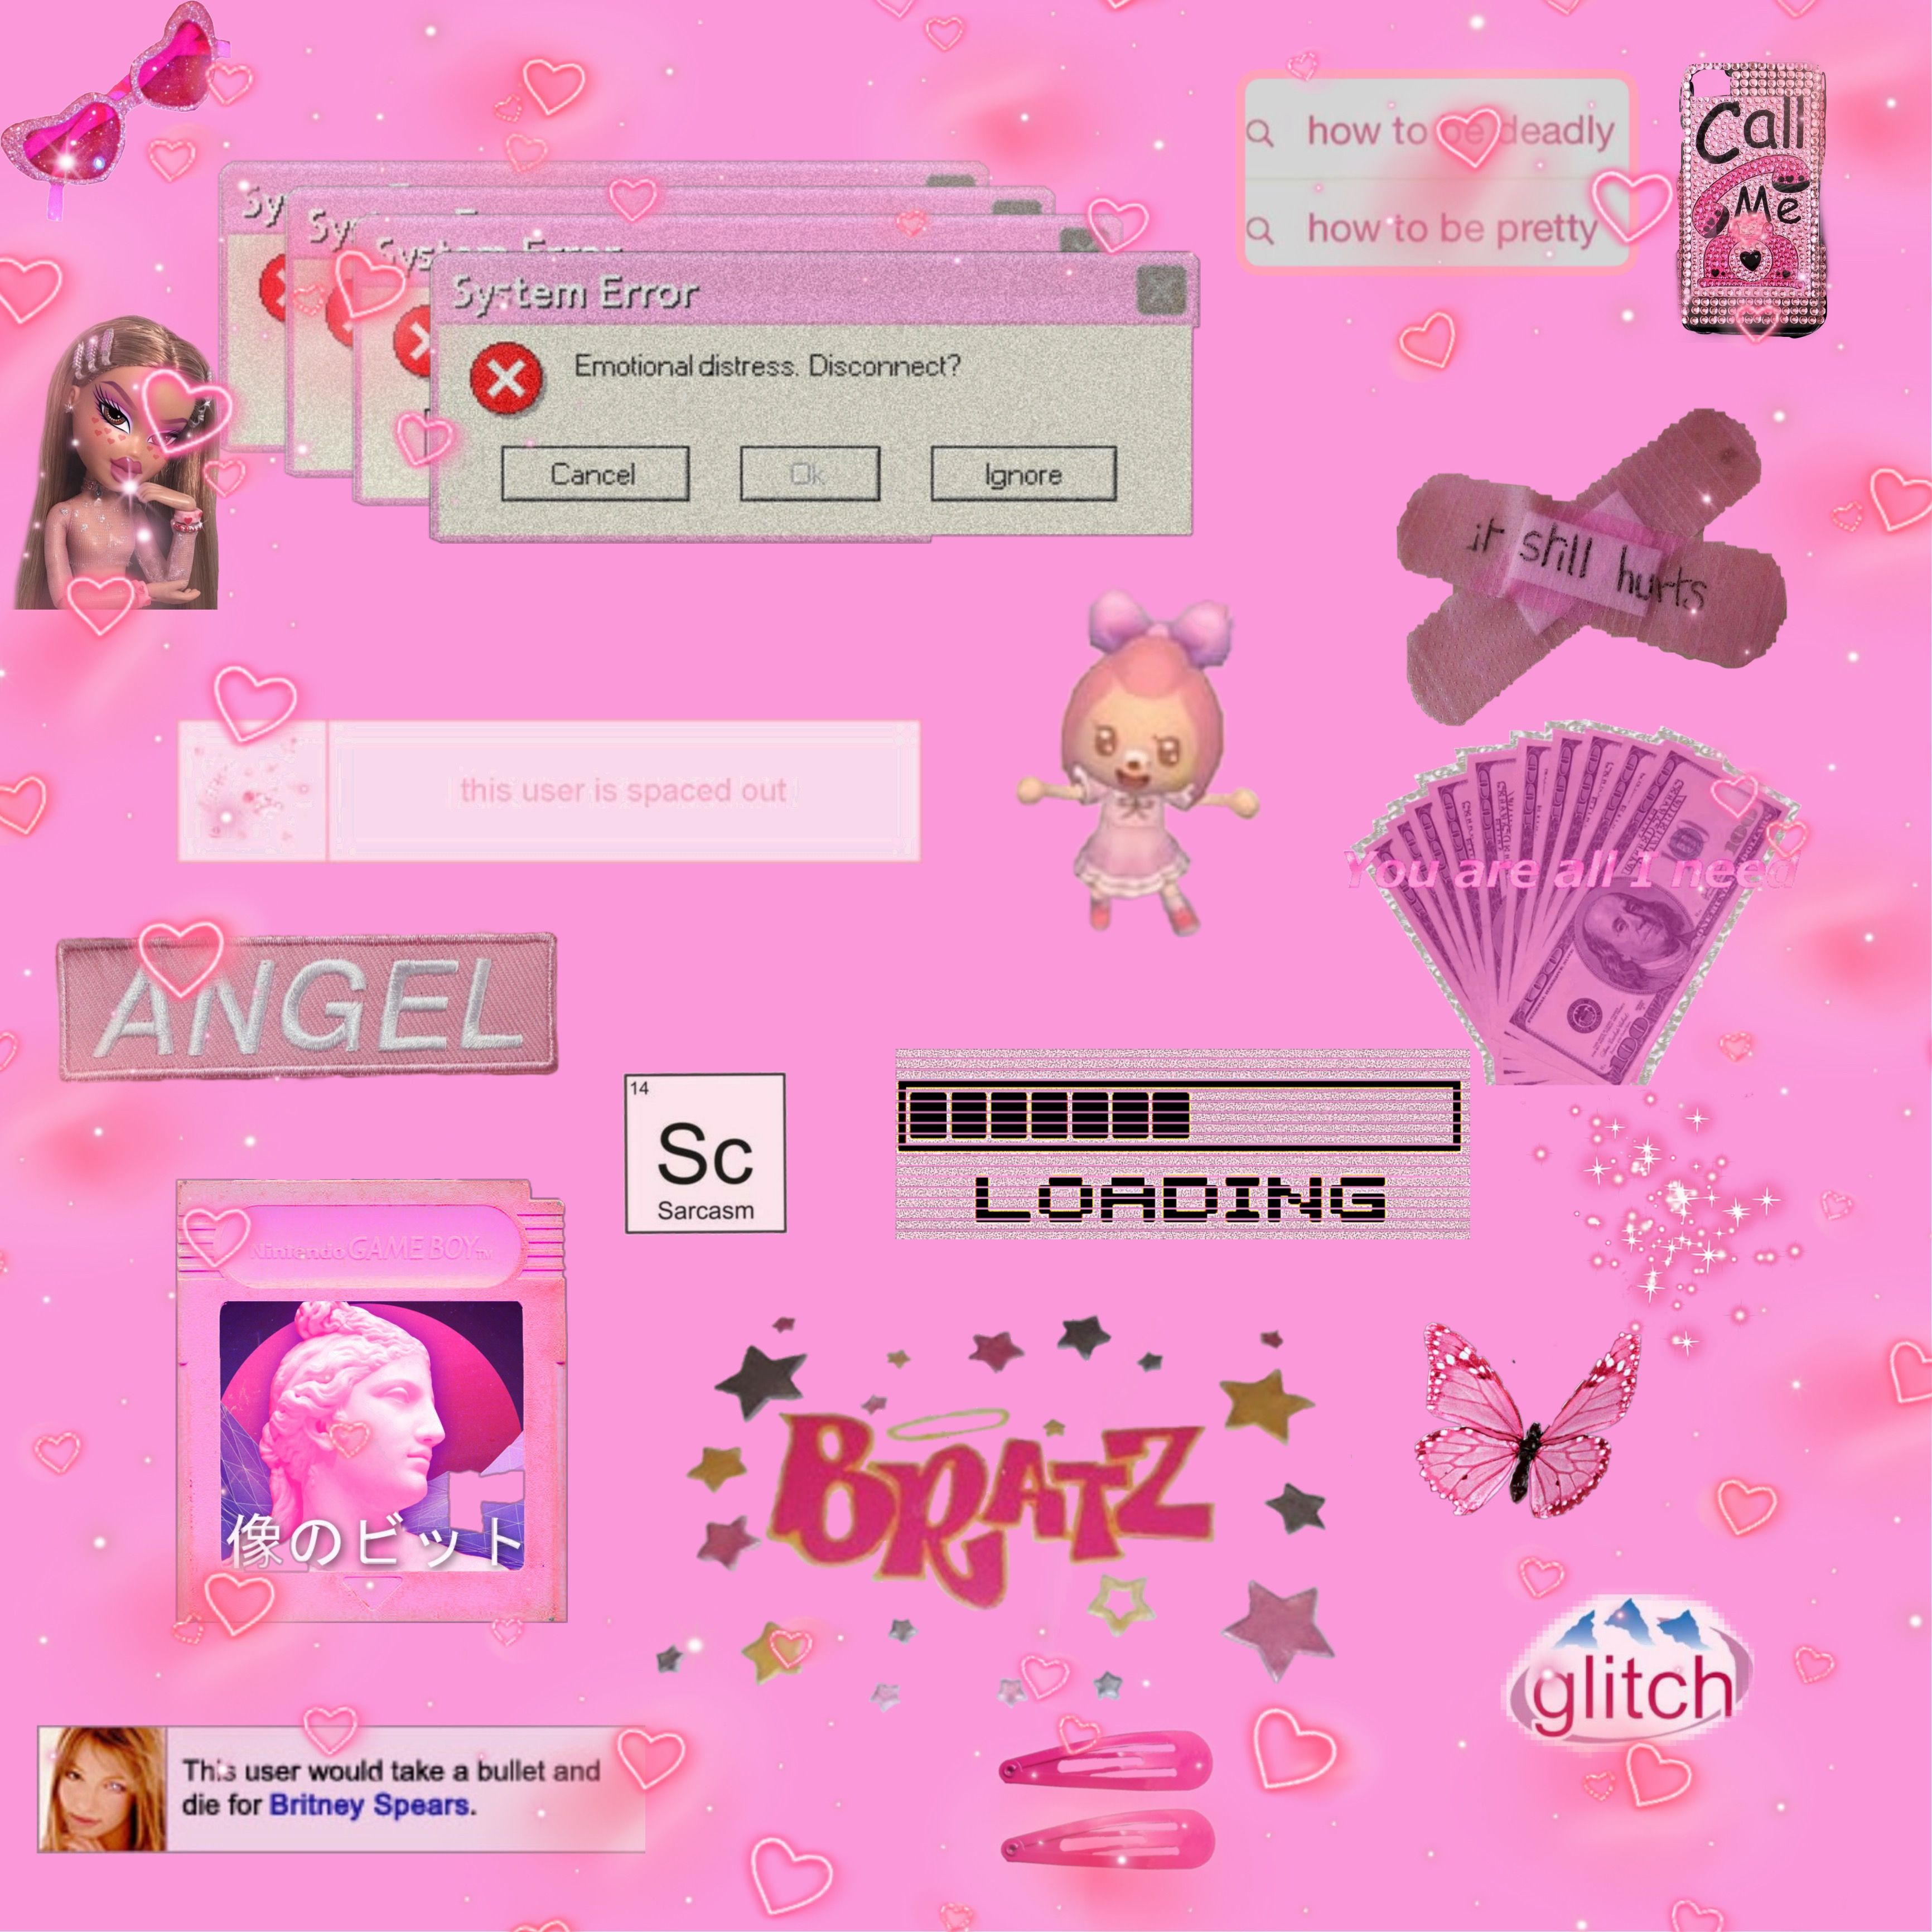 aesthetic 2000s wallpapers